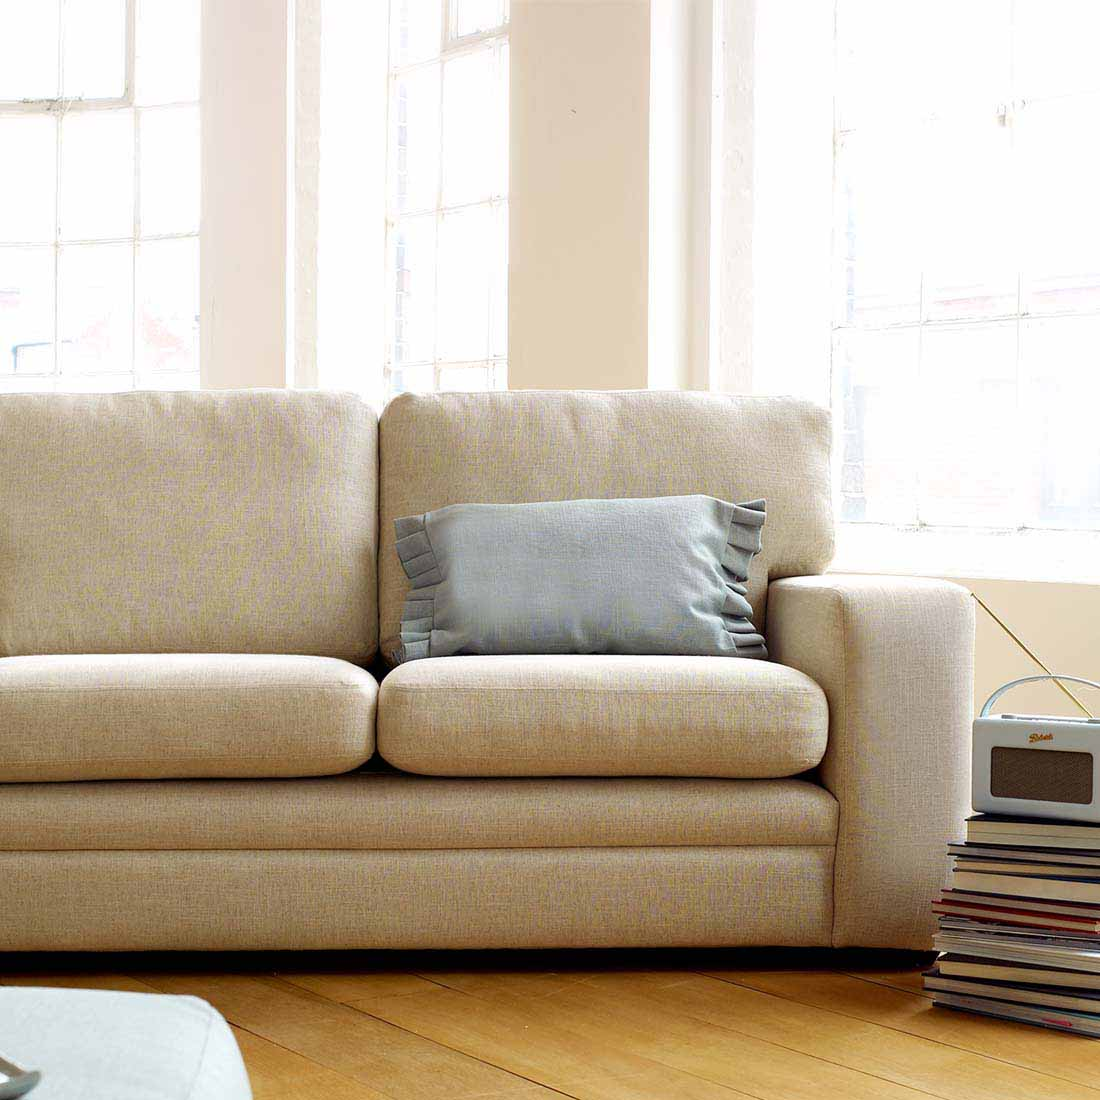 Bronx 25 Sofa Bed Forest Contract : bronx sofa from www.forestcontract.com size 1100 x 1100 jpeg 78kB